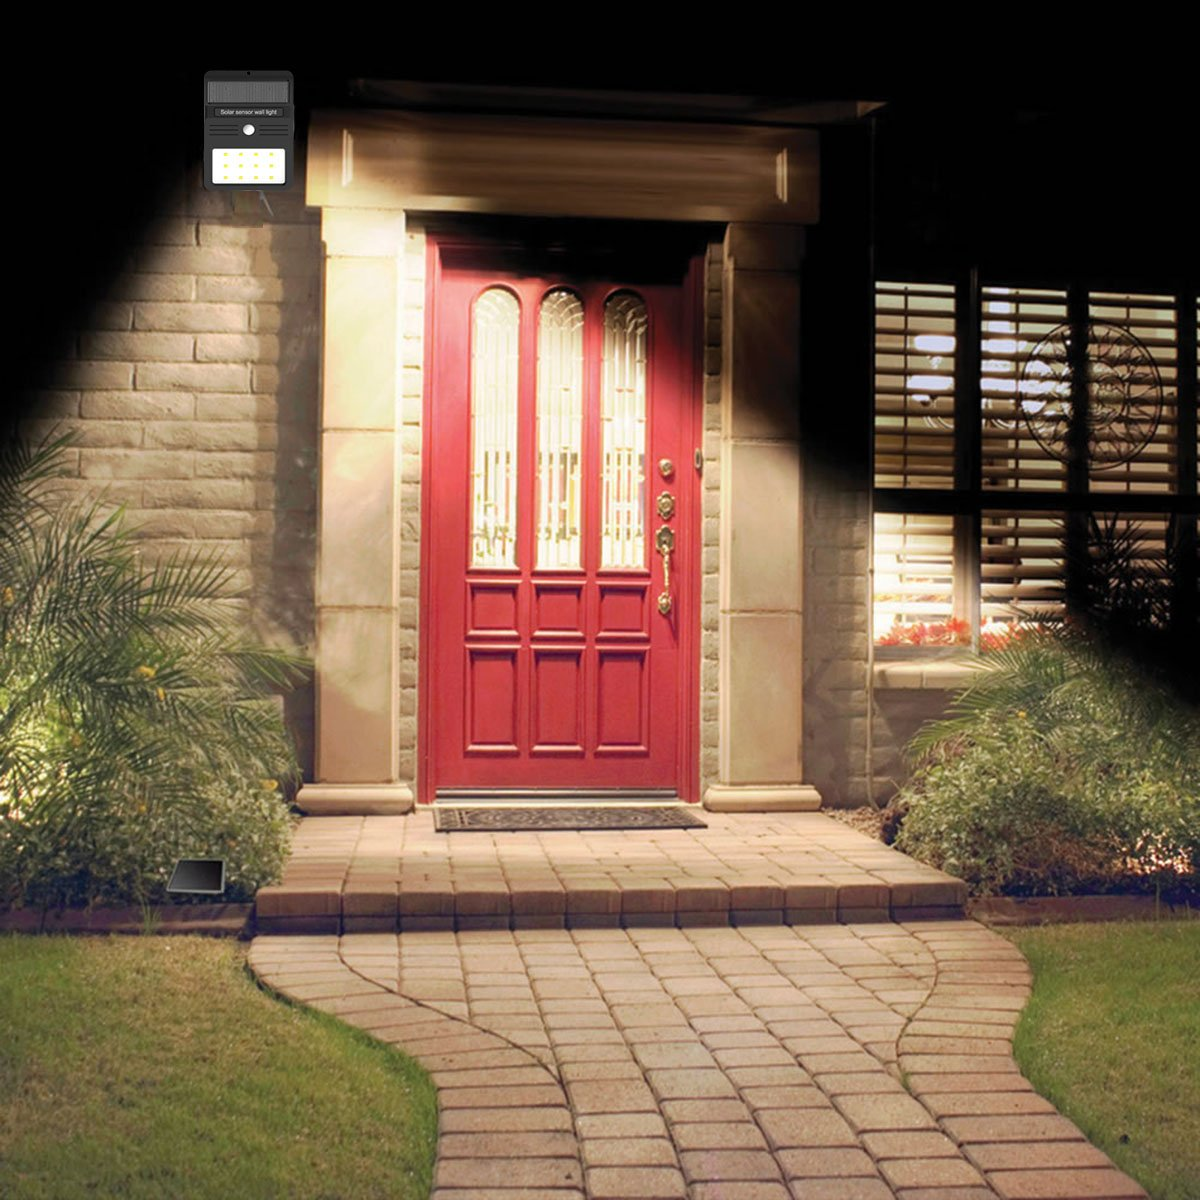 Mulcolor 12 LED Solar Lights Waterproof Solar Powered Motion Sensor Light Wireless Led Security Lights Outdoor Wall Light … by Mulcolor (Image #5)